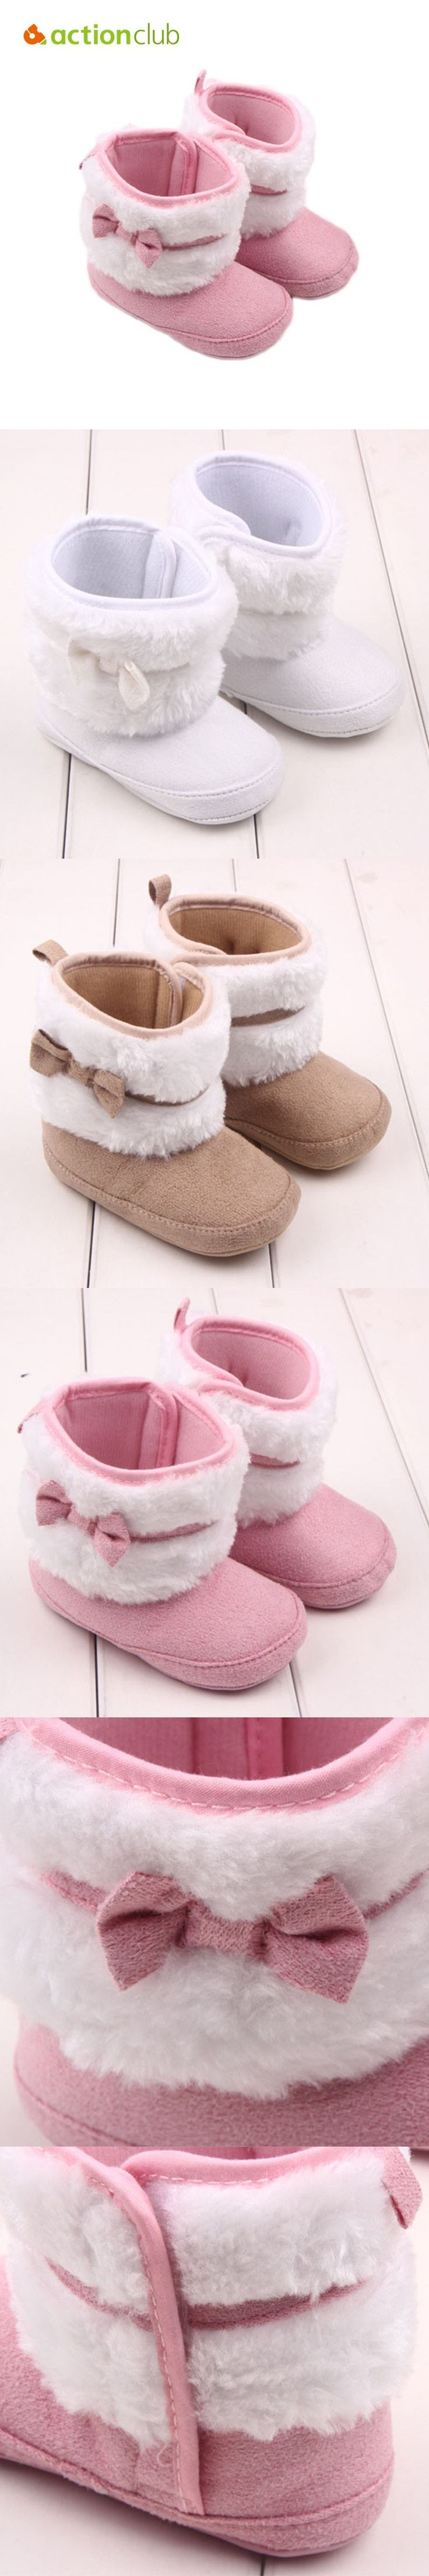 Baby Shoes Soft Baby Boots First Walker Winter Newborn Infant Girls Shoes Warm Kids Boots Soft Sole Boots Kids Footwear $10.19